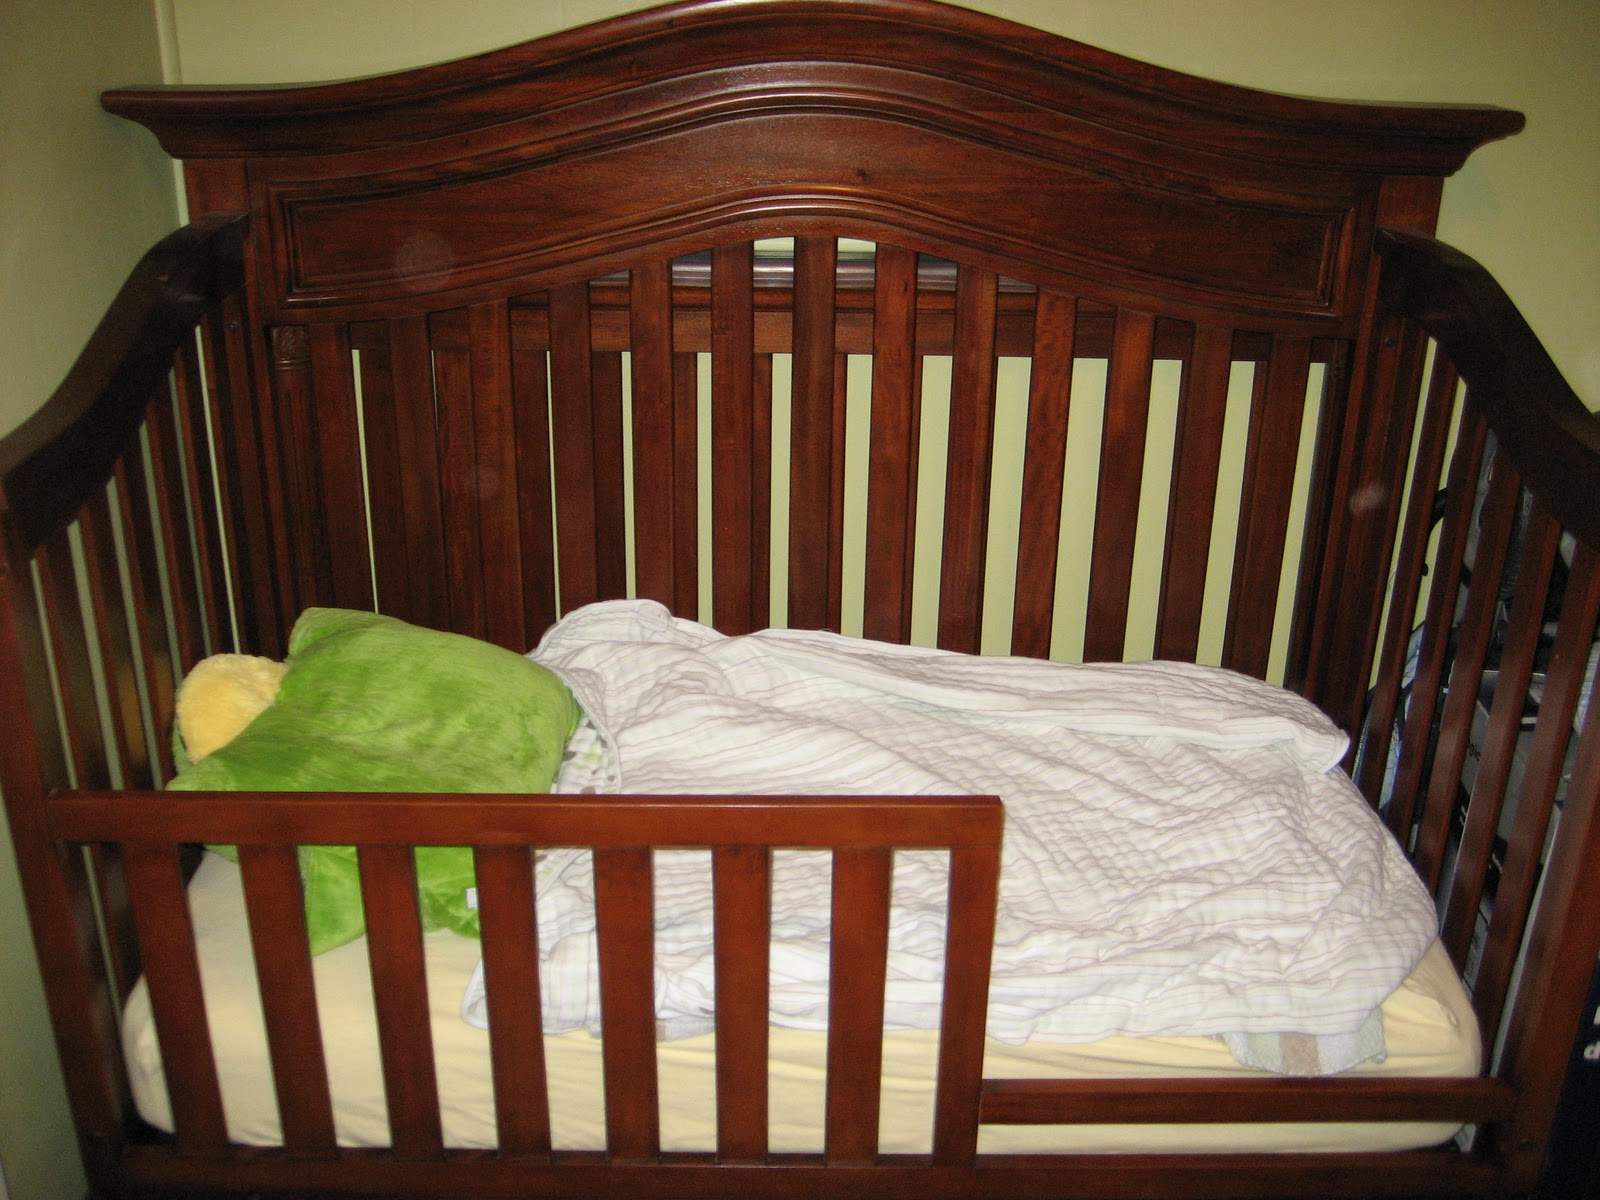 The Presson Family Converted Crib To Toddler Bed